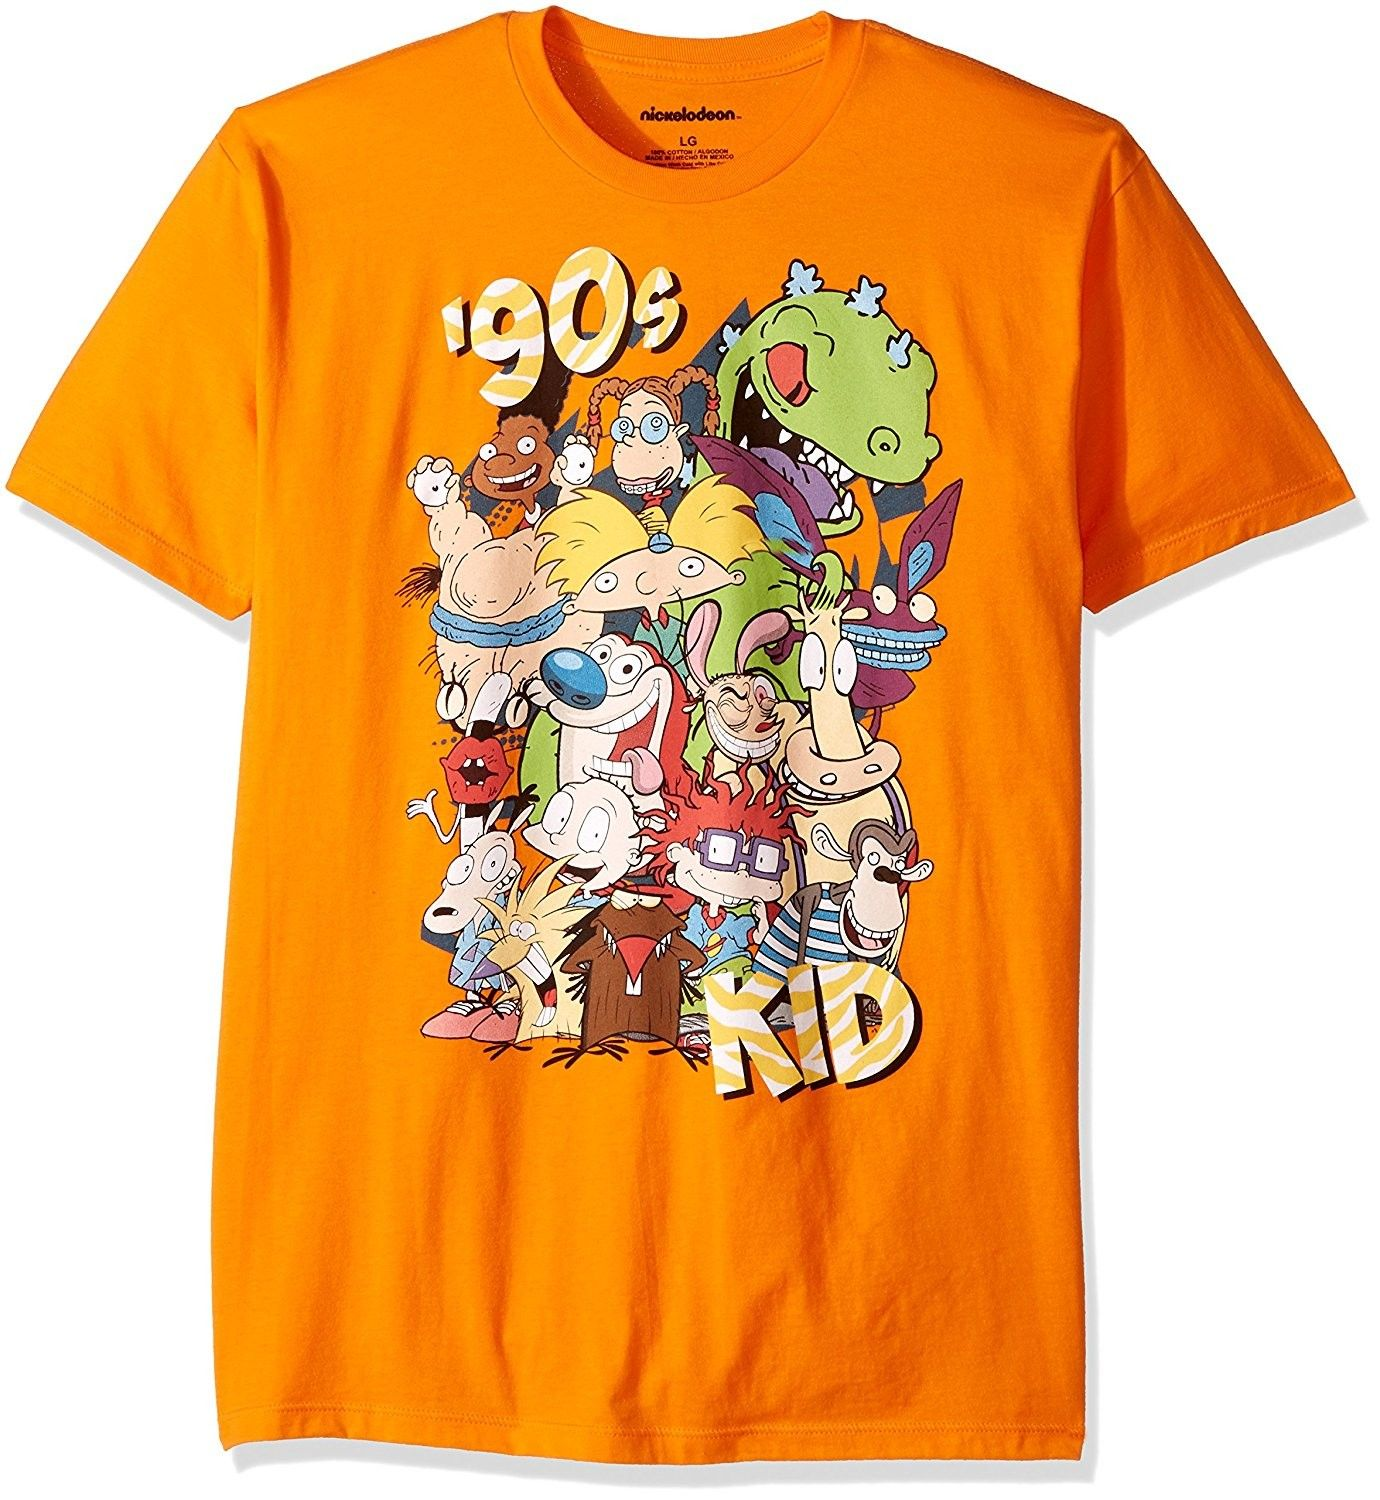 b86af942c11 Men s Ren and Stimpy- Rugrats and Classic Show Characters T-Shirt ...